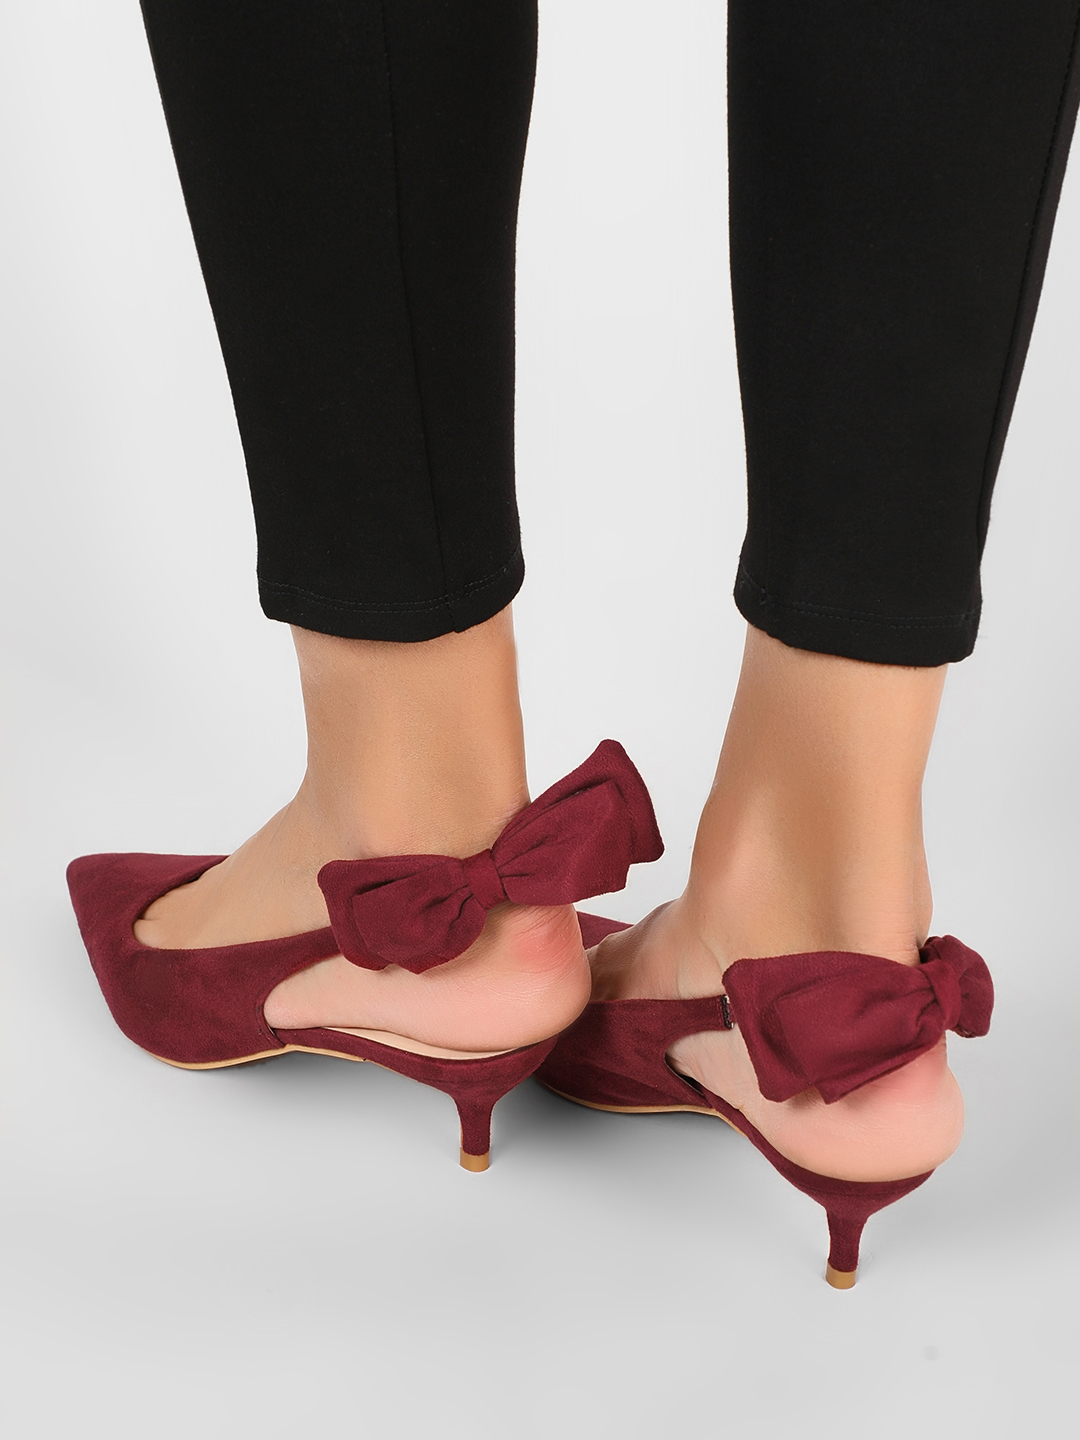 Intoto Burgundy Kitten Heels With Bow Detail 1